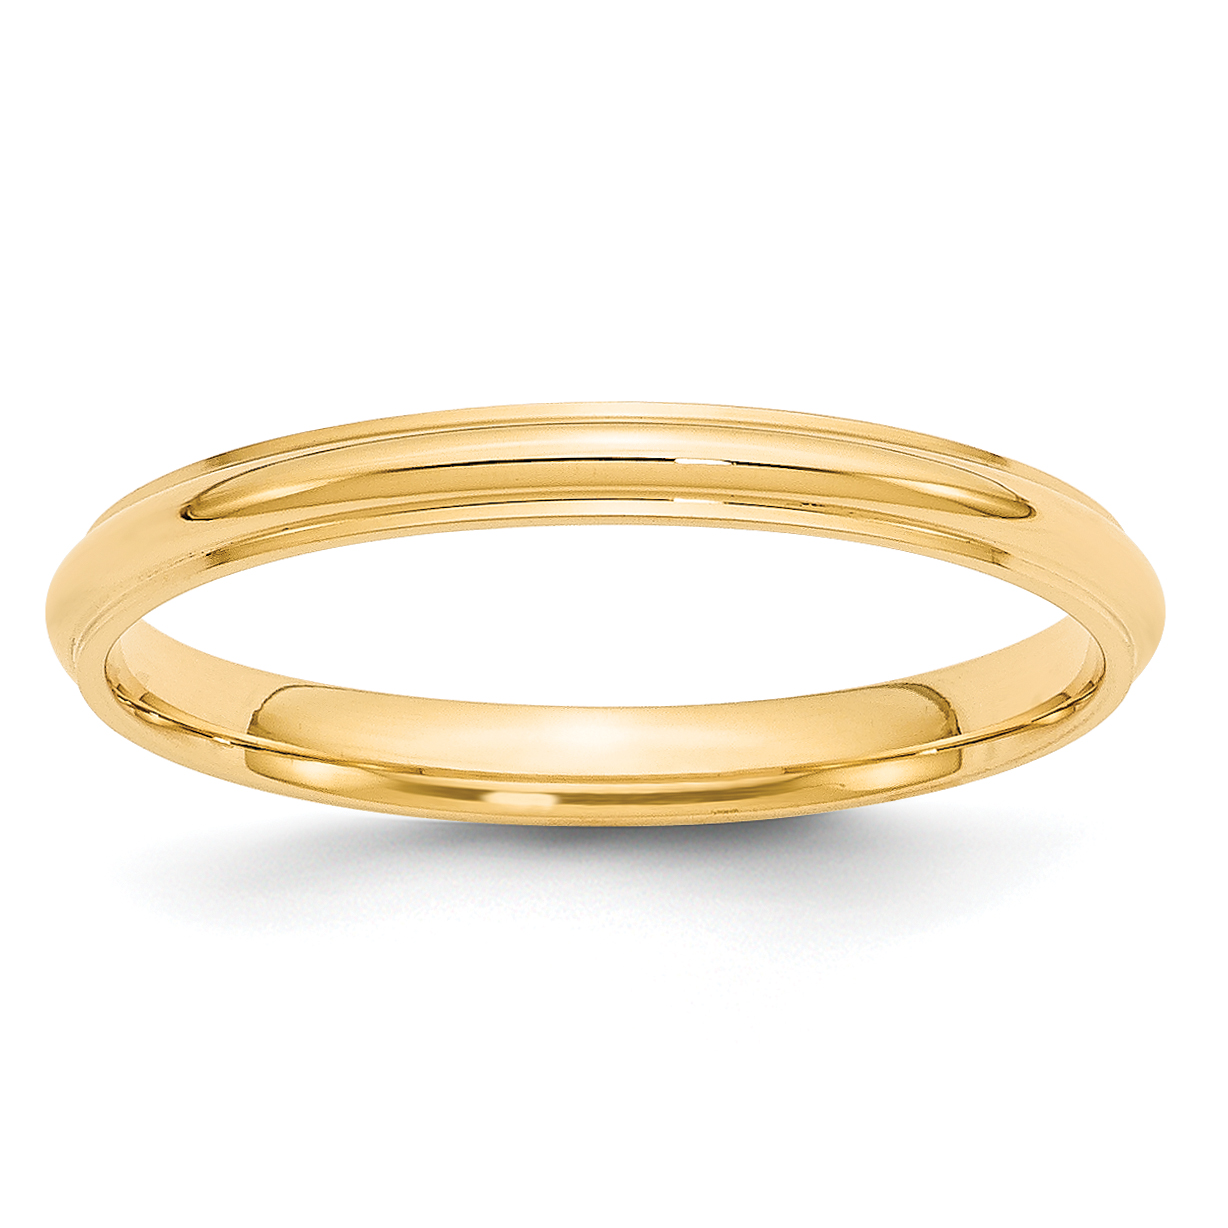 Roy Rose Jewelry 14K Yellow Gold 2.5mm Half Round with Edge Wedding Band Ring Size 4